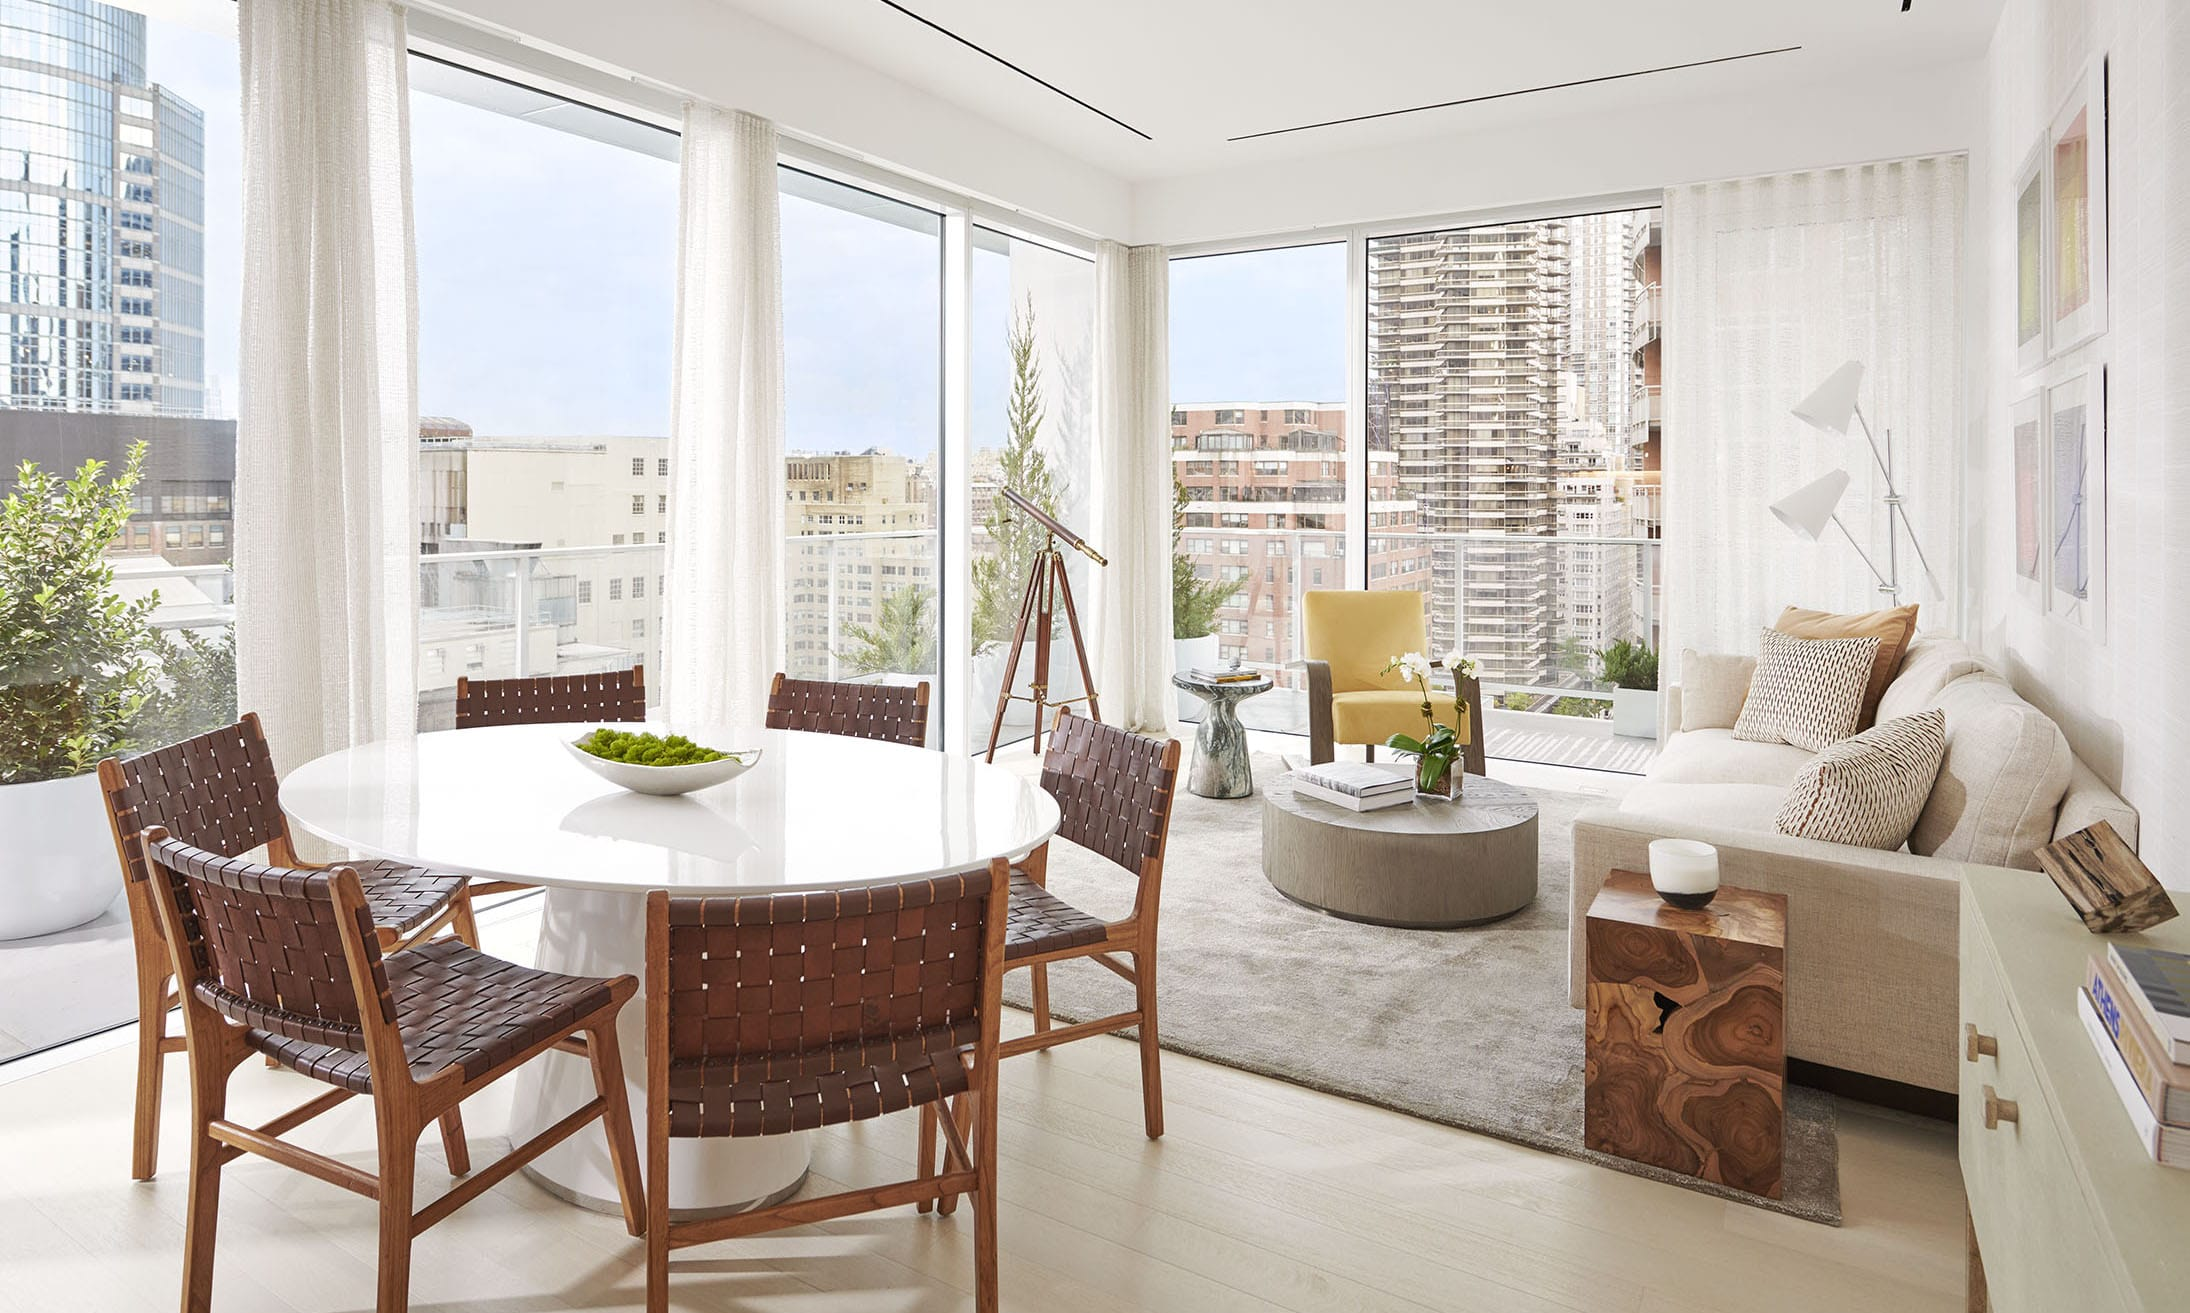 Corner living room with floor-to-ceiling windows, white table, and a tan couch overlooking New York at 200 E 59 condos.